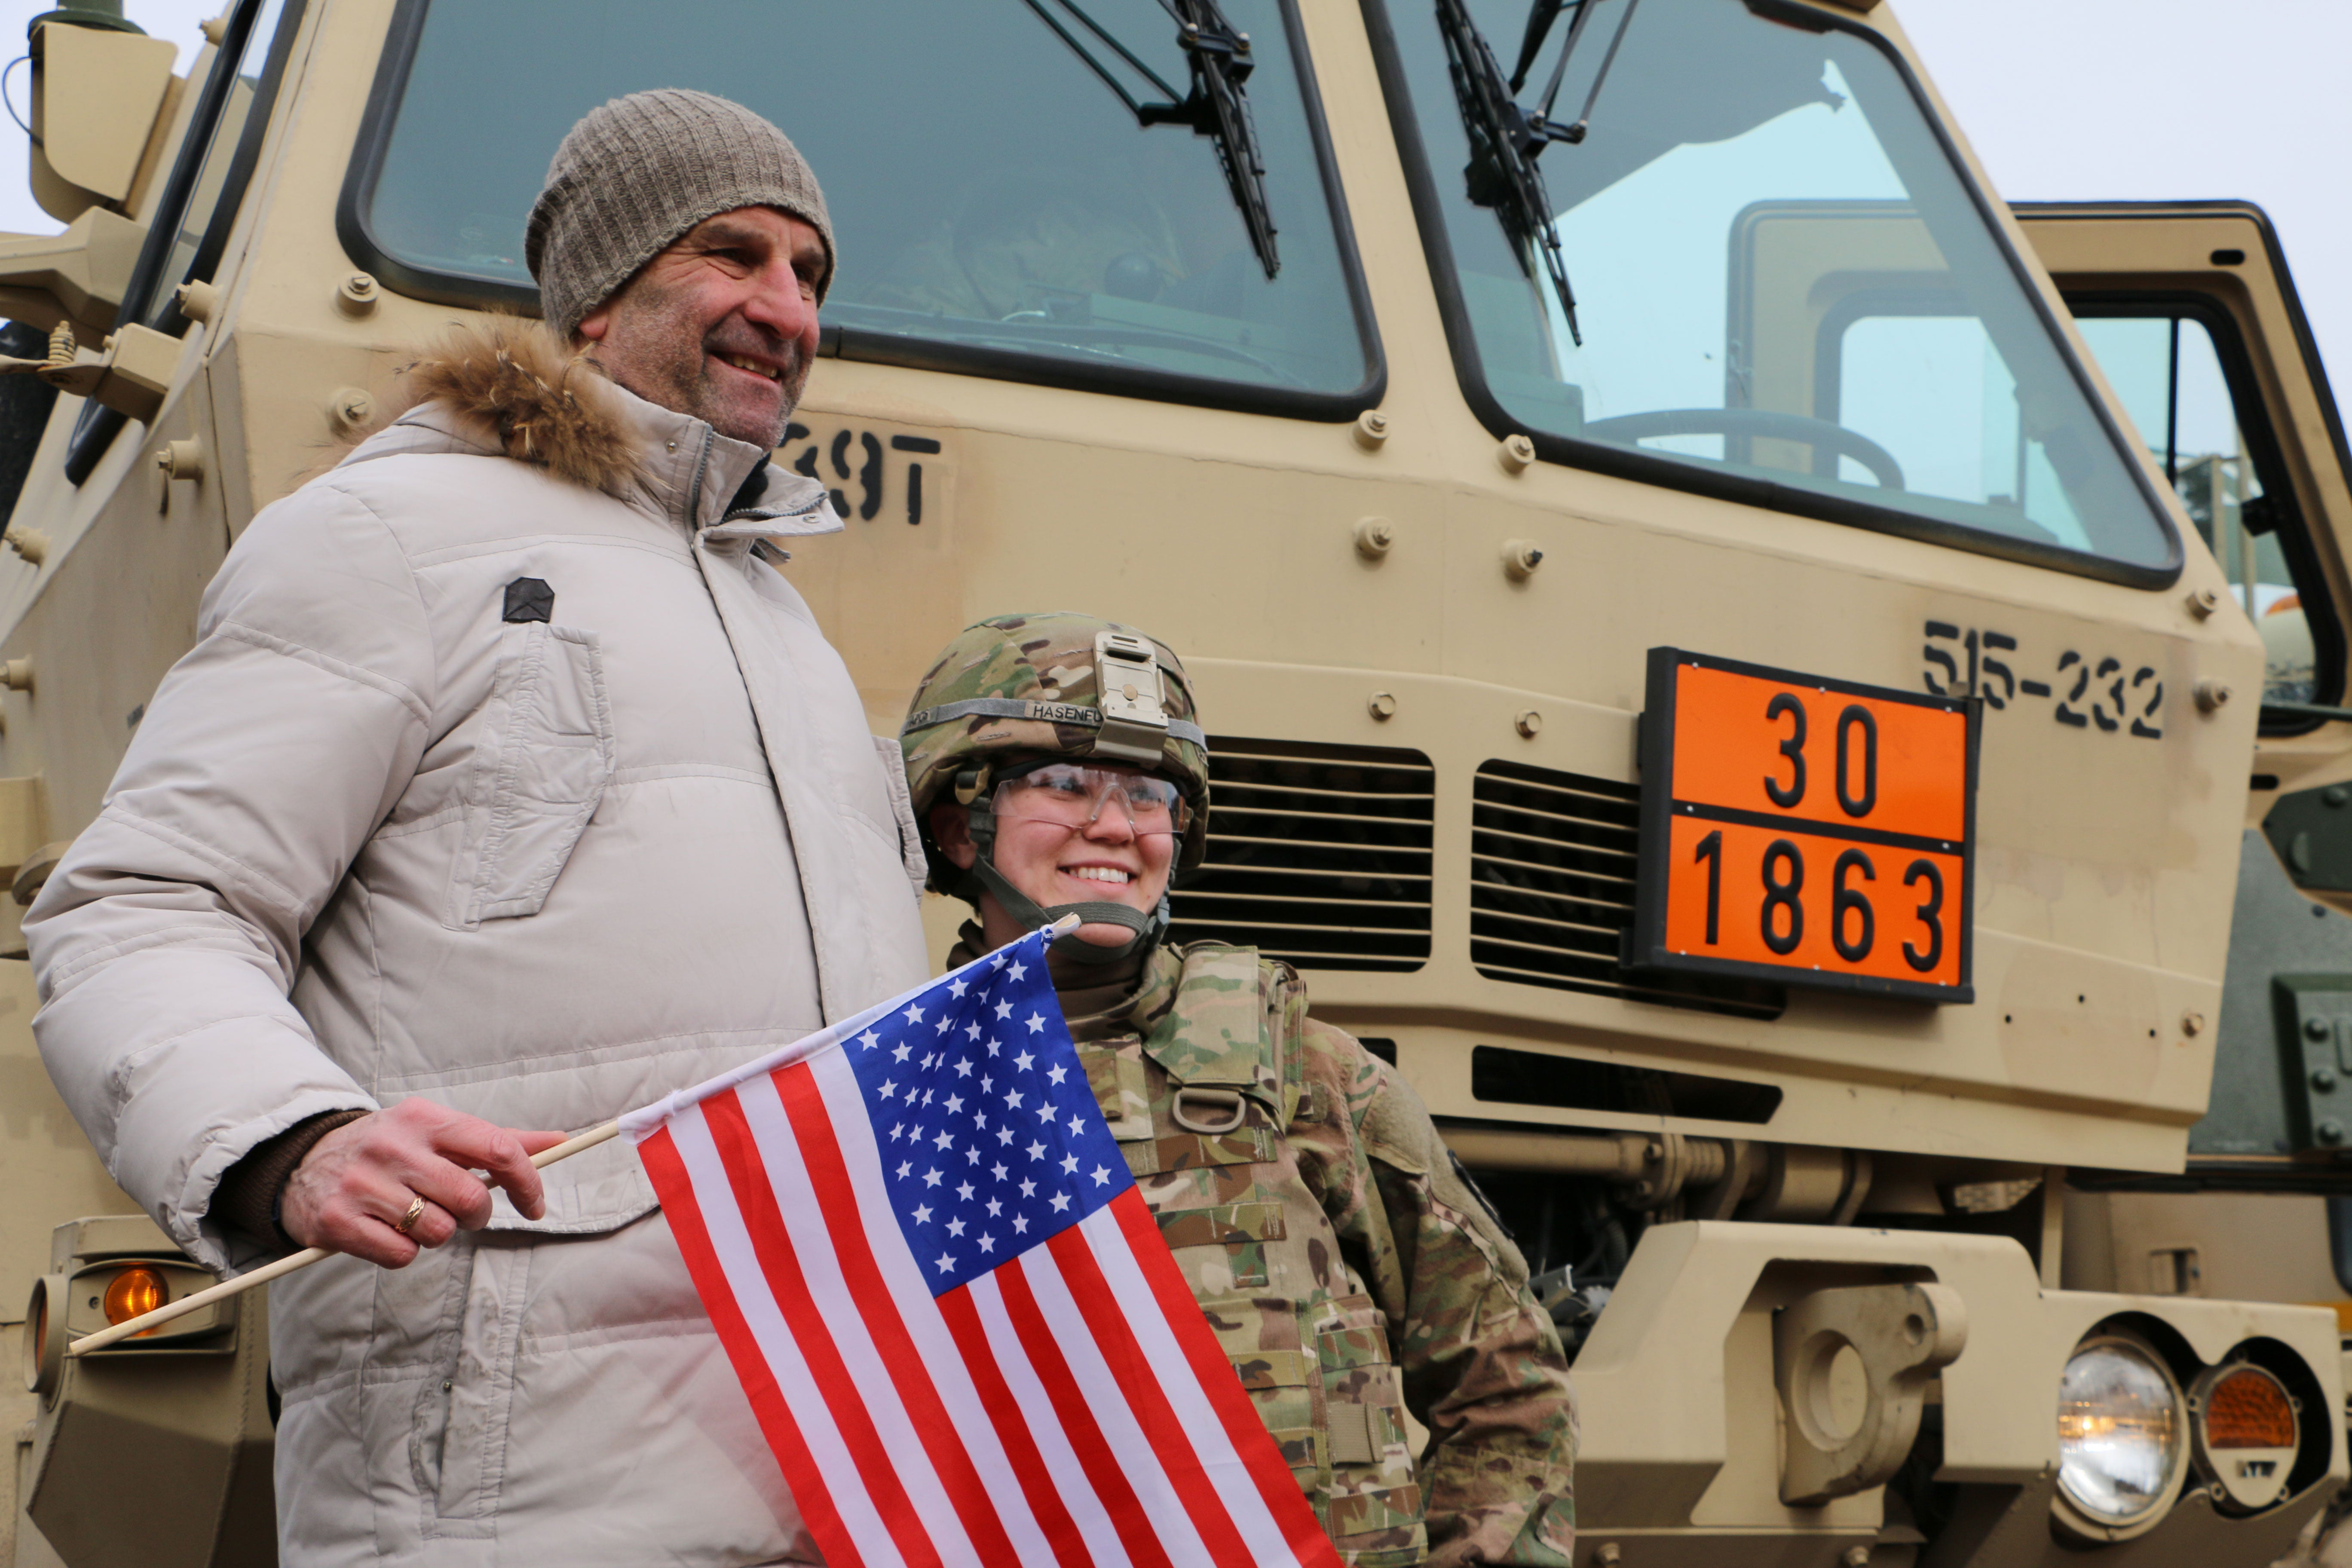 In Latvia, civilians welcome a U.S. Army Stryker convoy in 2015. (Photos: Nolan Peterson/The Daily Signal)